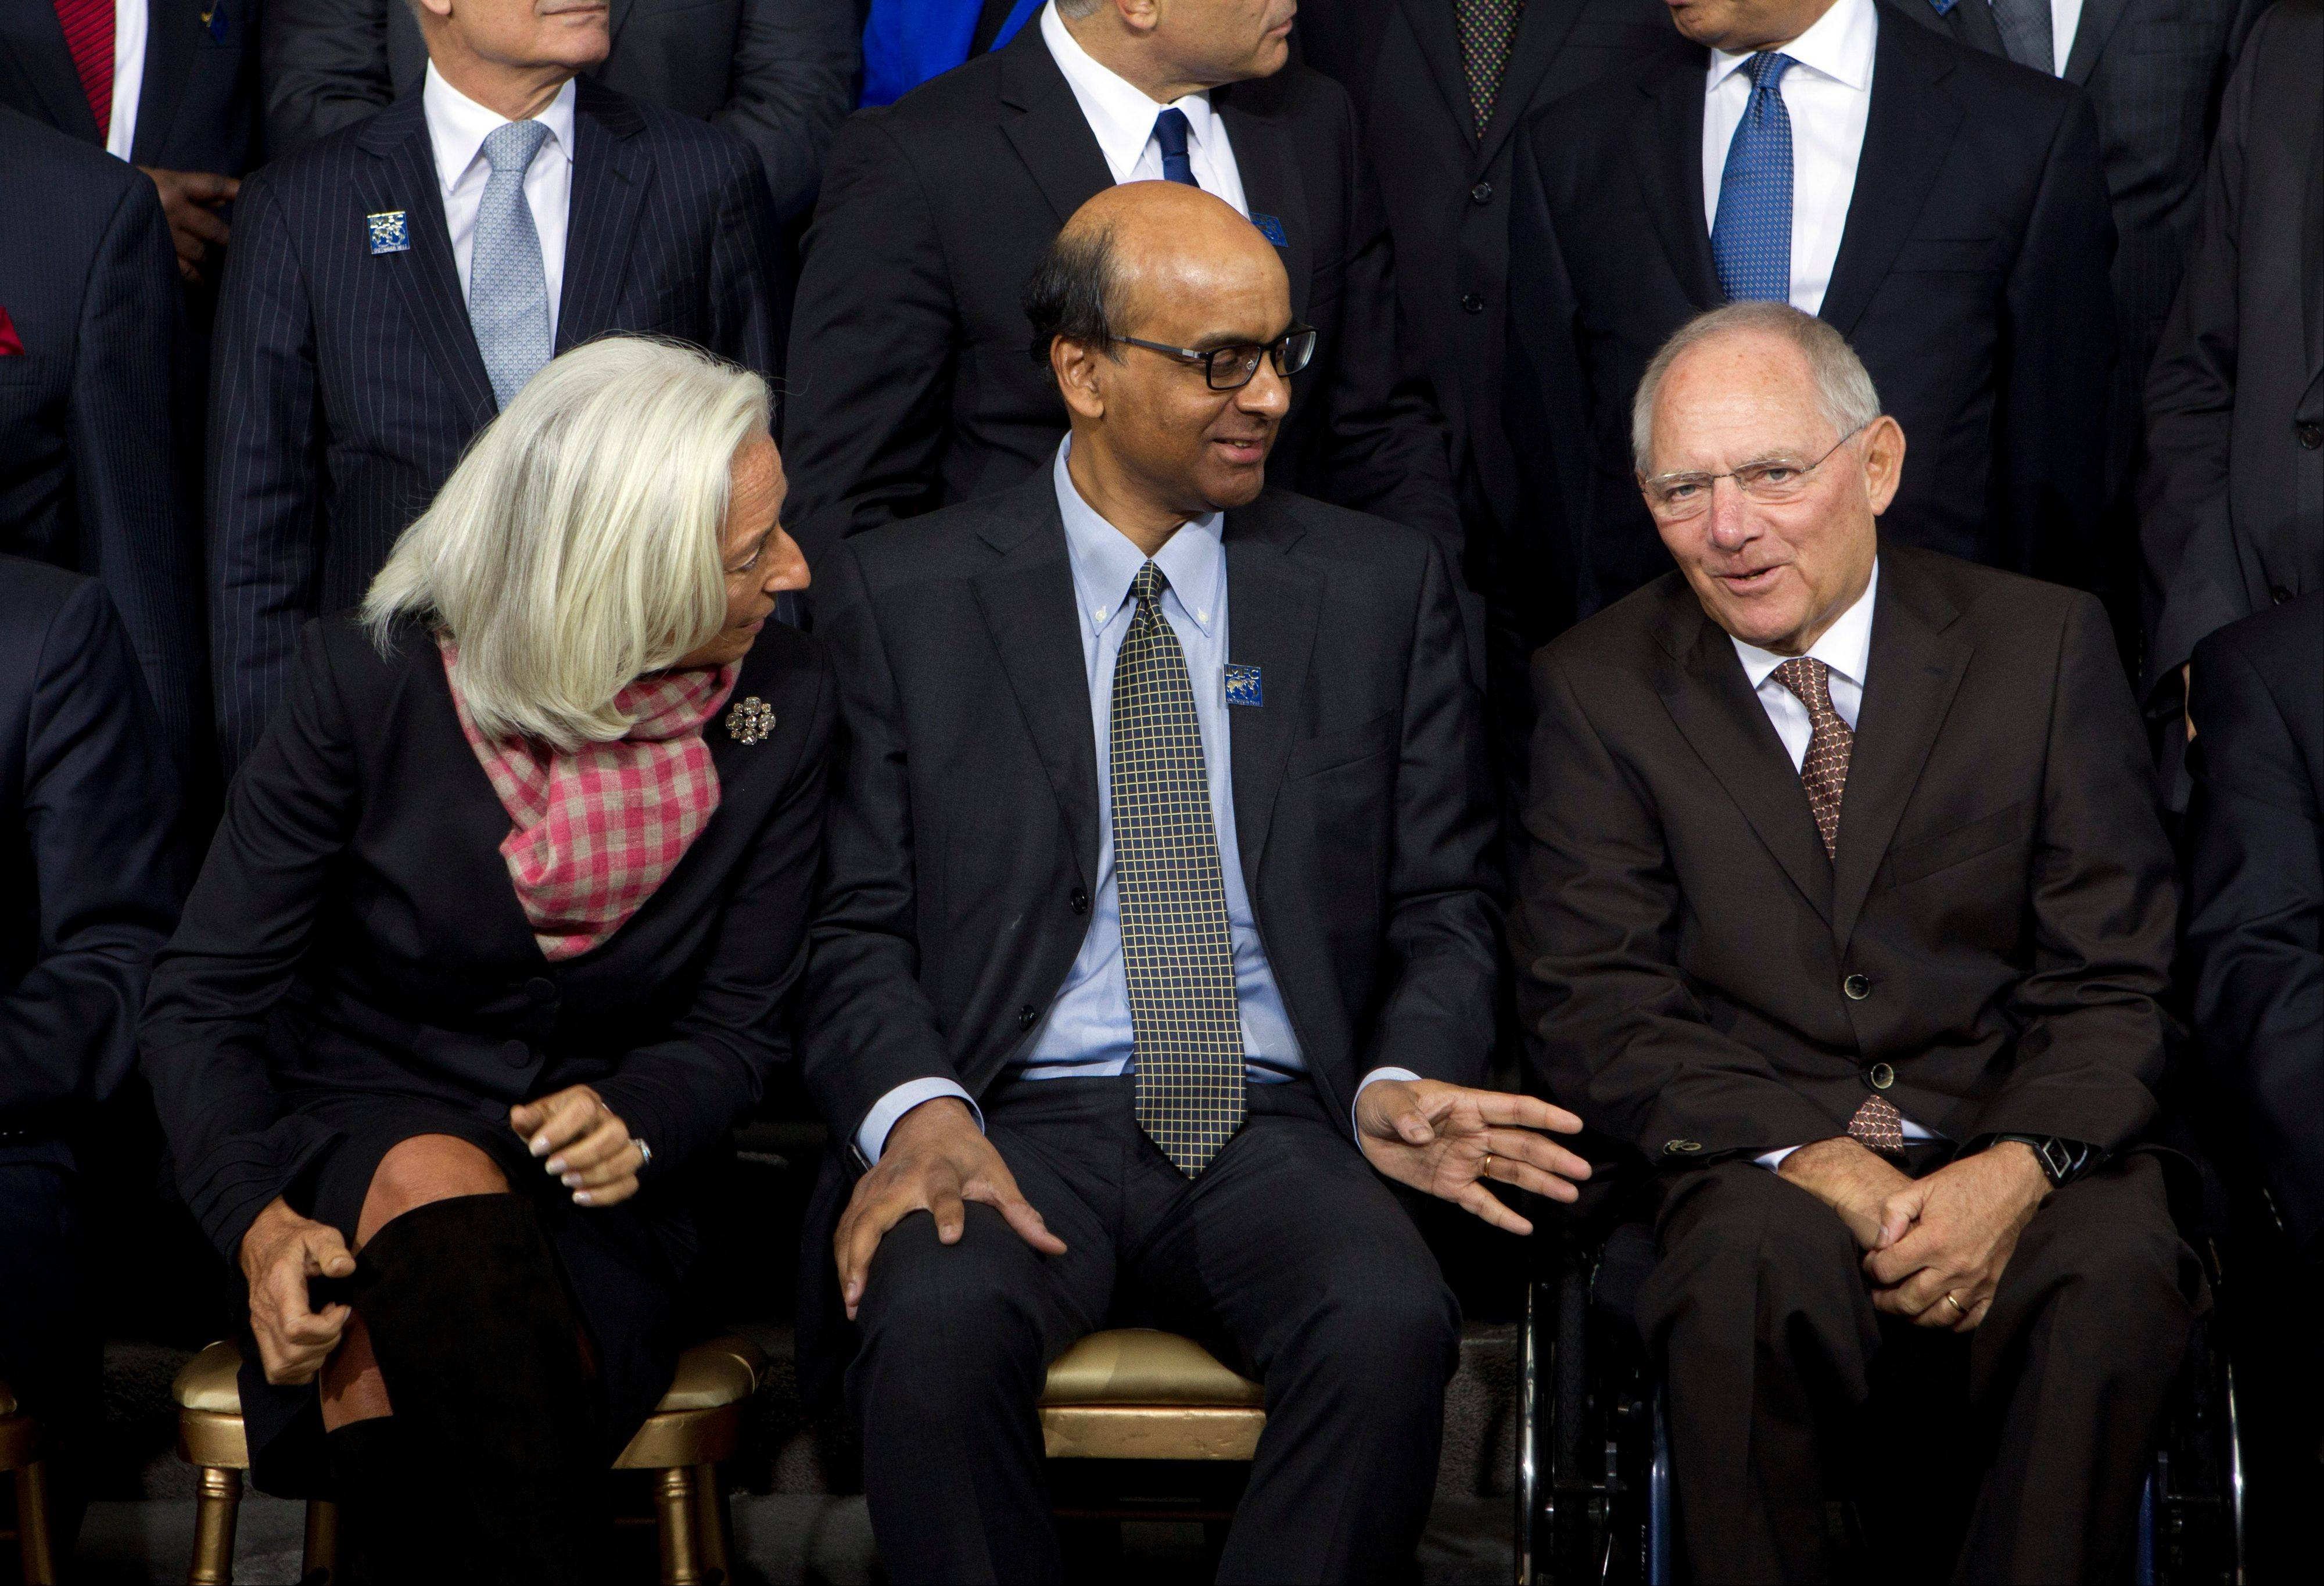 International Monetary Fund Managing Director Christine Lagarde, left, speaks with Singapore Finance Minister Tharman Shanmugaratnam and German Finance Minister Wolfgang Schaeuble, right, during a group photo Saturday at IMF headquarters in Washington.